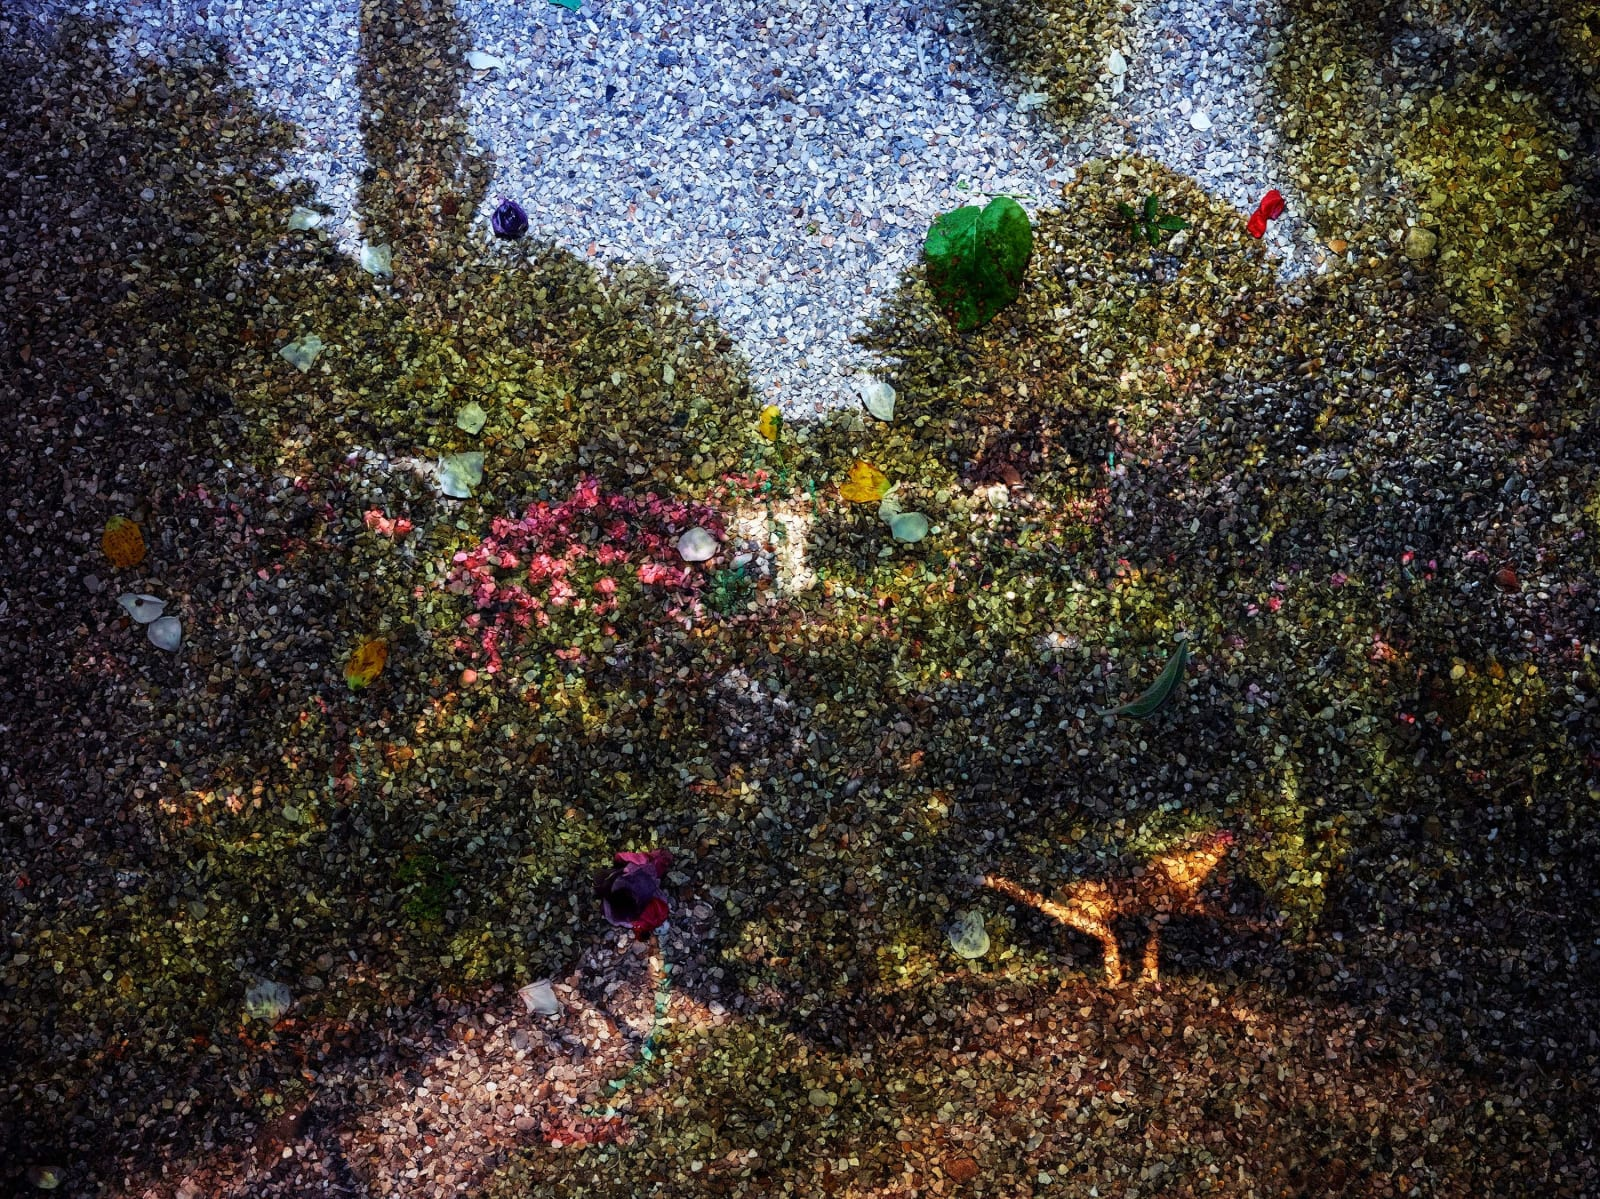 Abelardo Morell Tent Camera Image on Ground View of Monet's Gardens with Wheelbarrow Giverny France with flower petals on ground Pointillist inspired